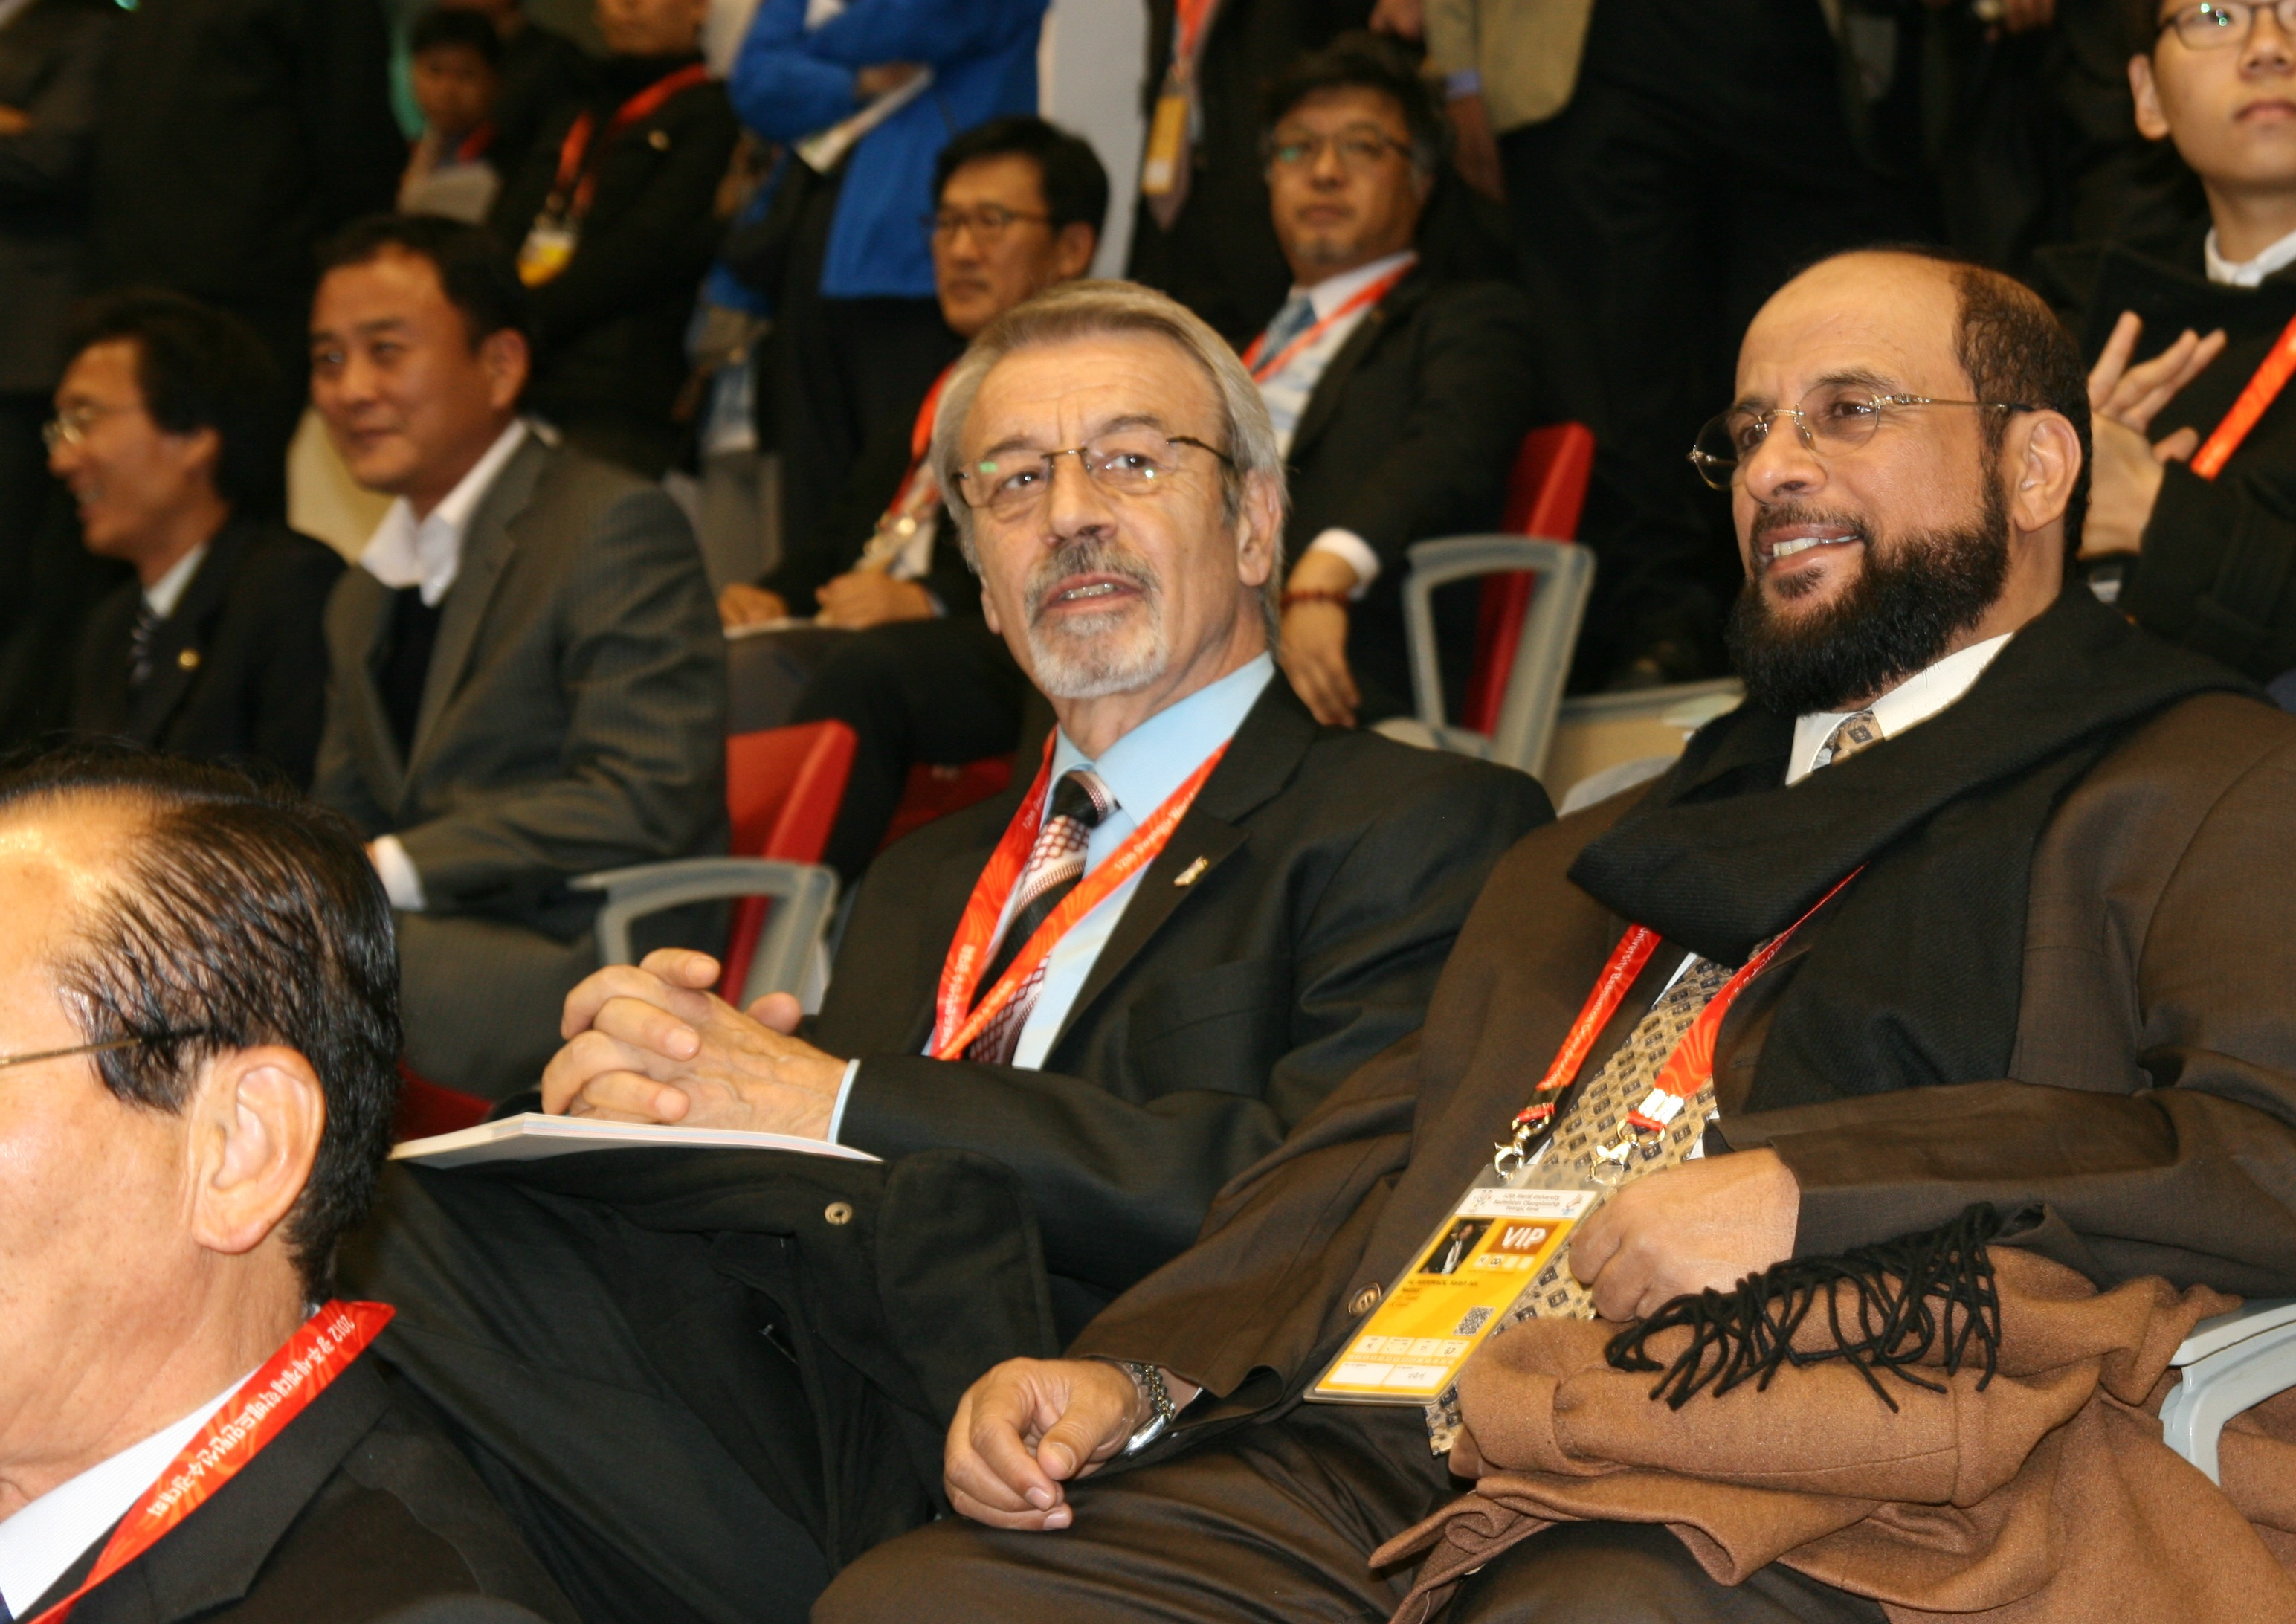 AIPS reporters at WUBC opening ceremony